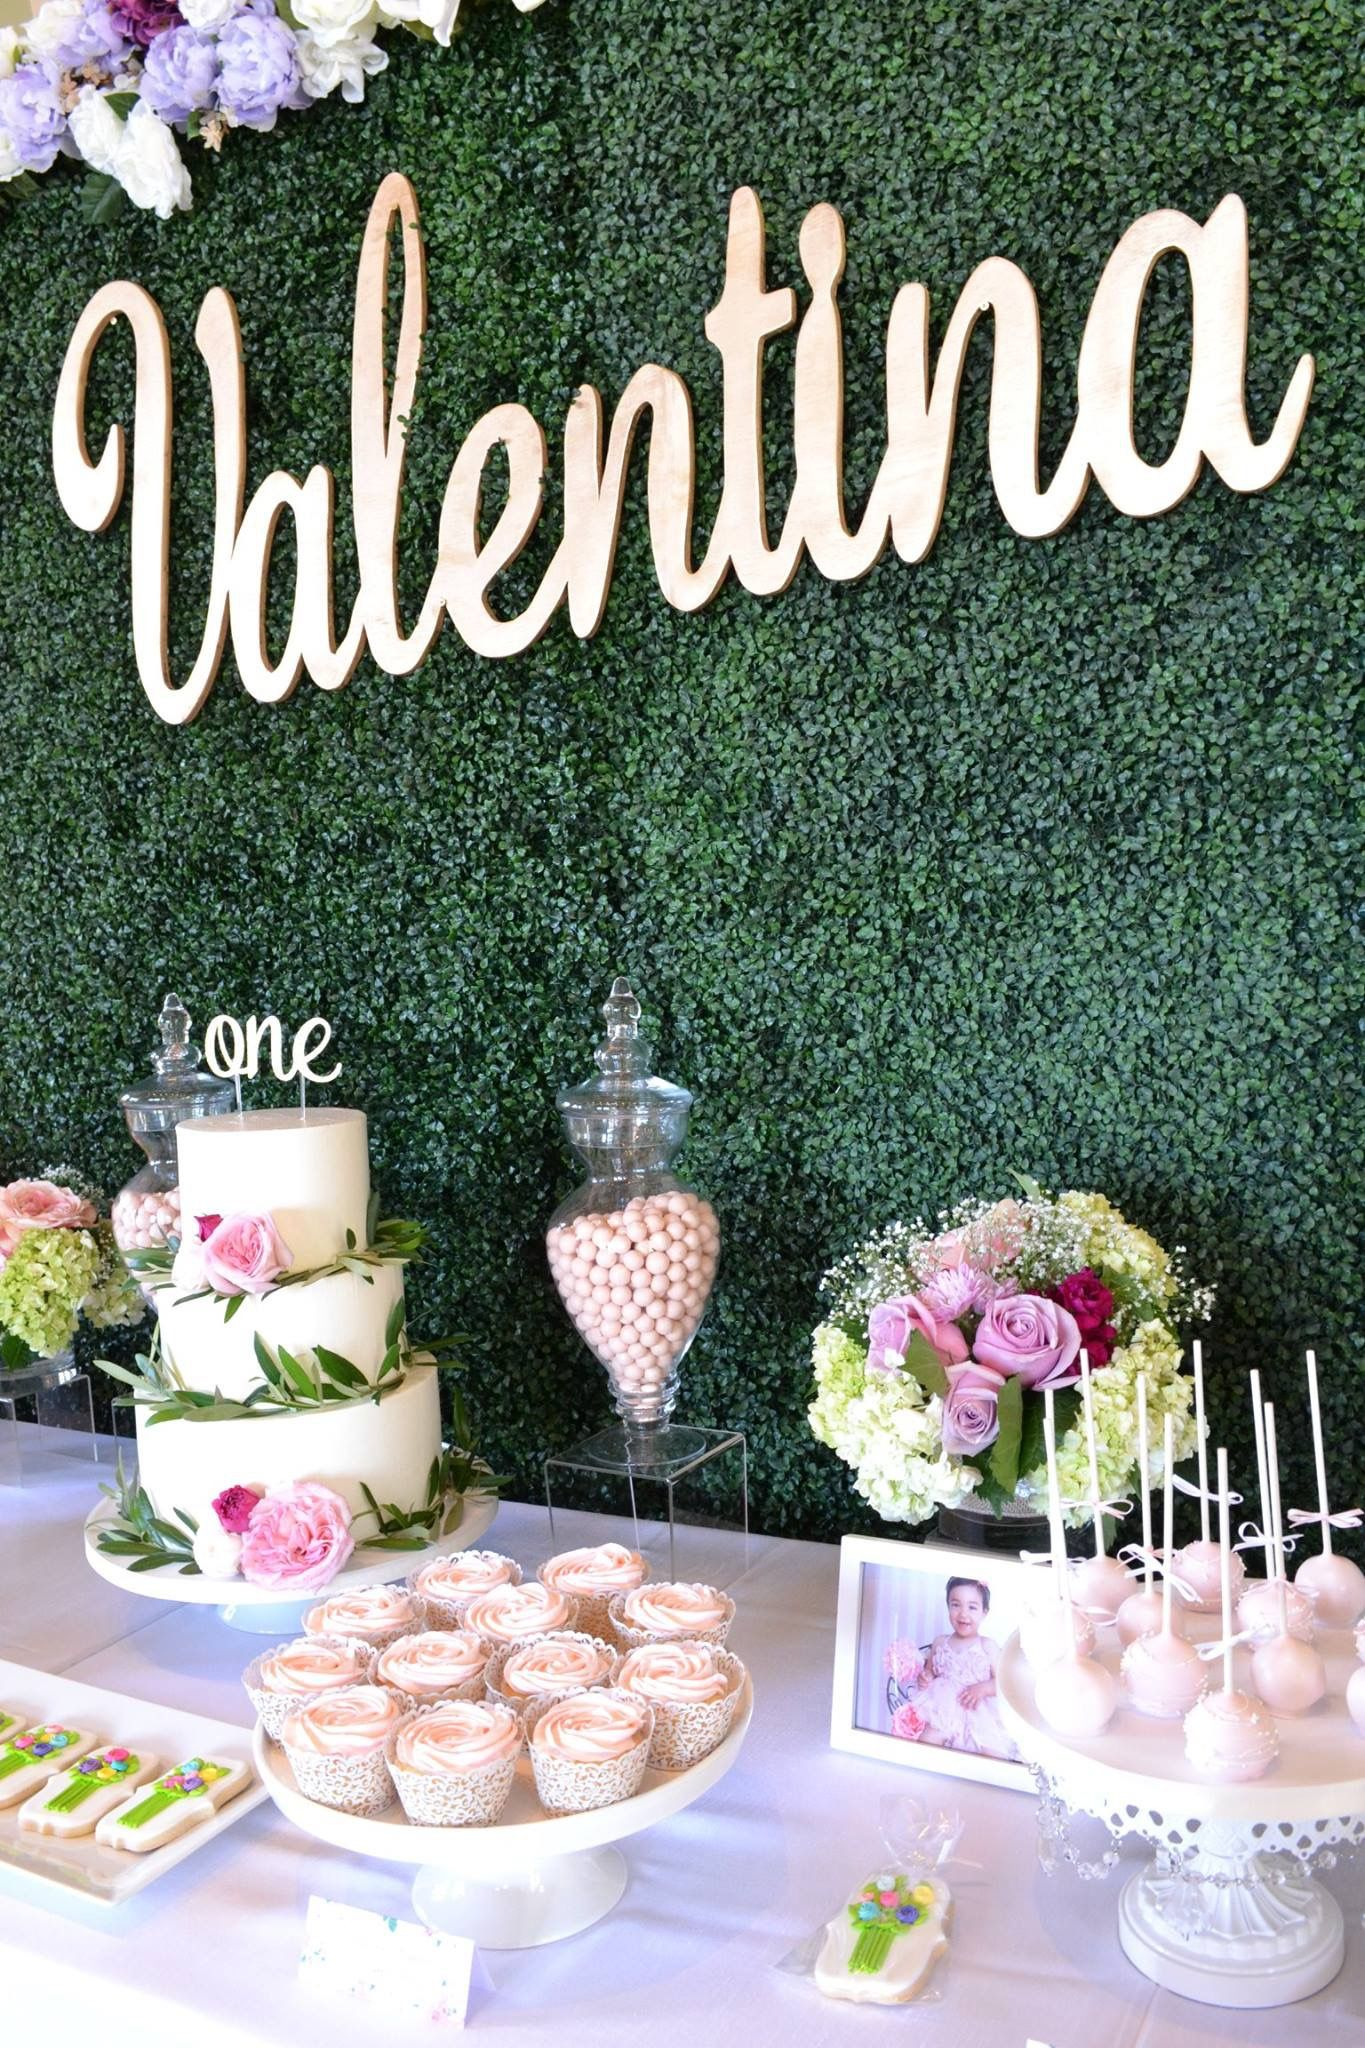 garden party with hedge wall background and gold name sign grass